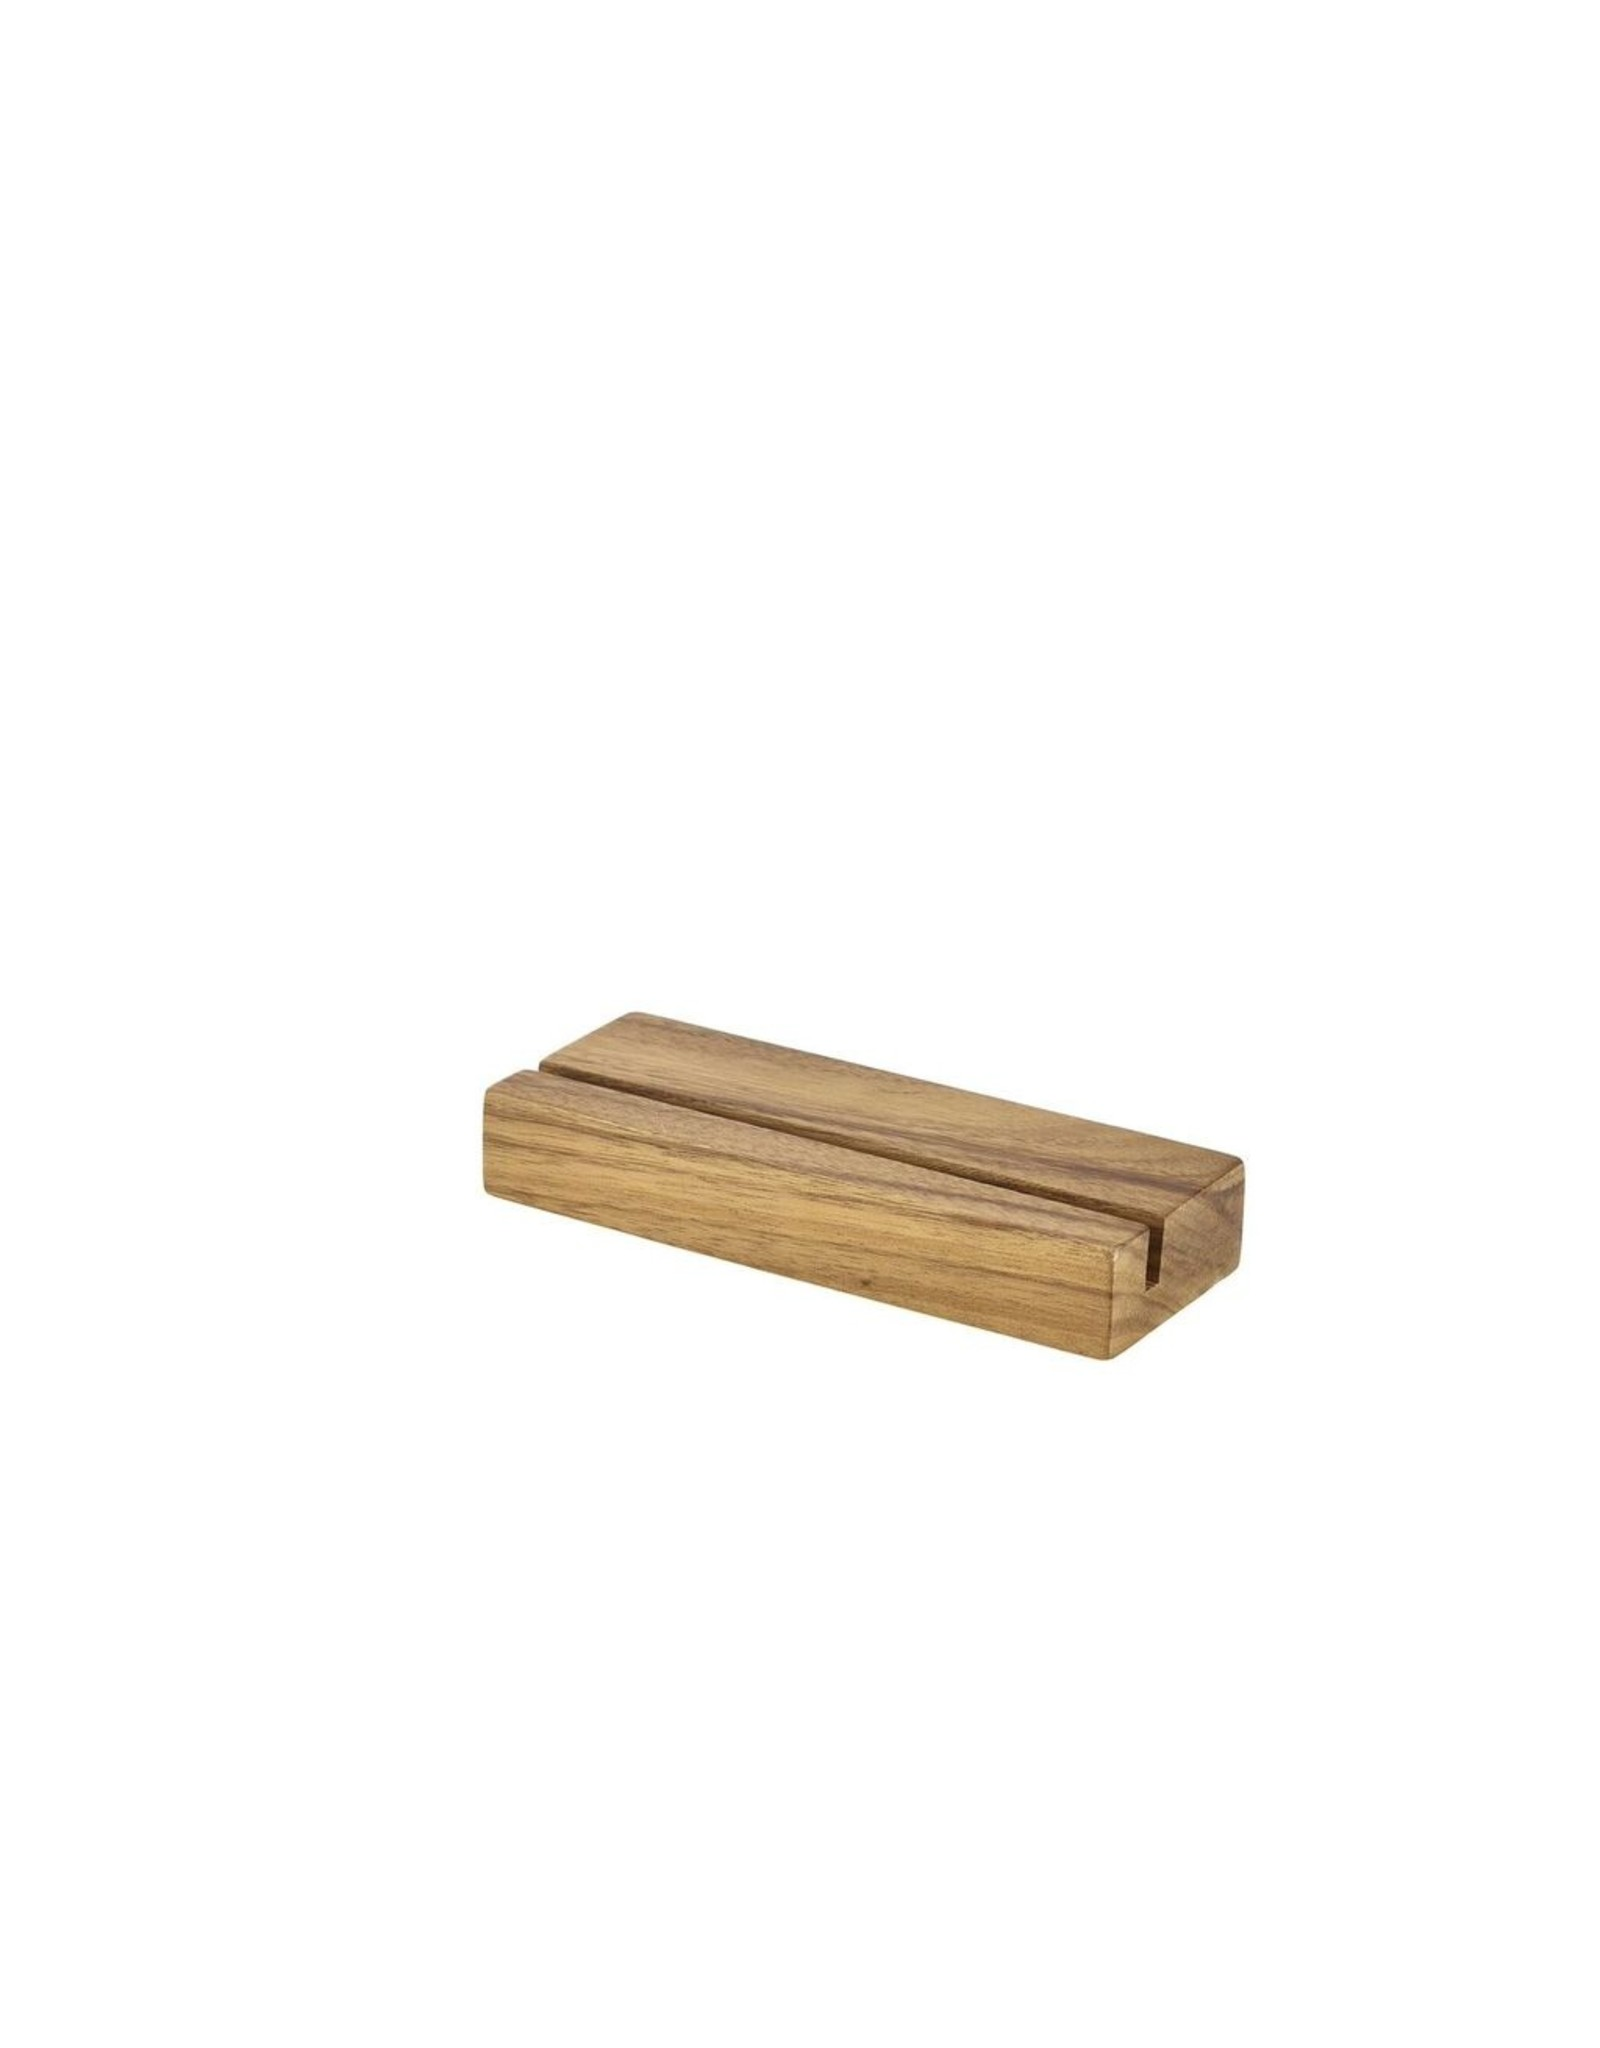 Stylepoint Acacia hout menu houder 20x3.2x7.5